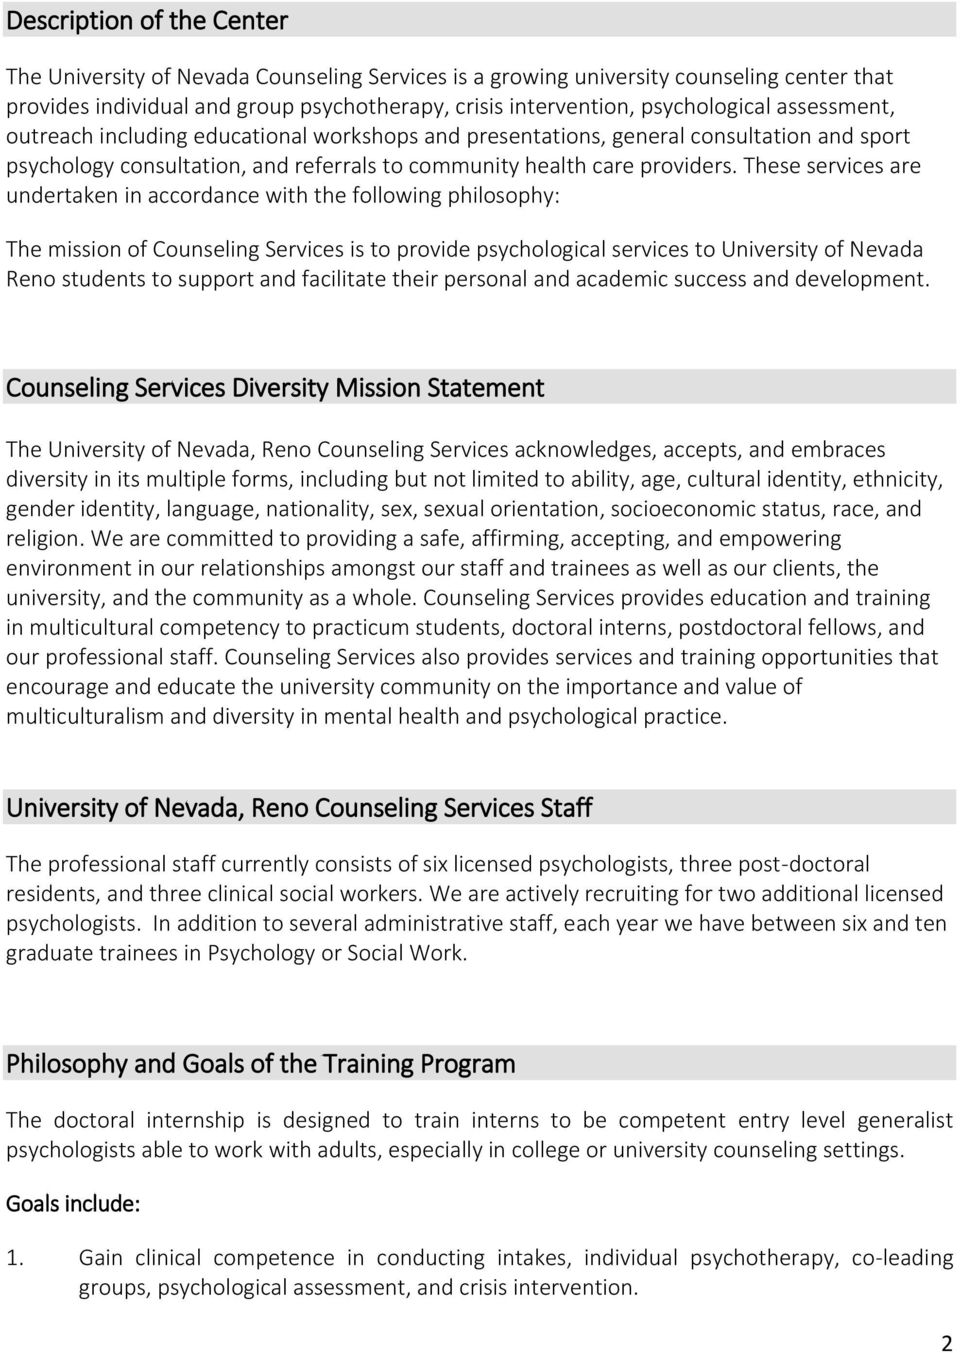 These services are undertaken in accordance with the following philosophy: The mission of Counseling Services is to provide psychological services to University of Nevada Reno students to support and